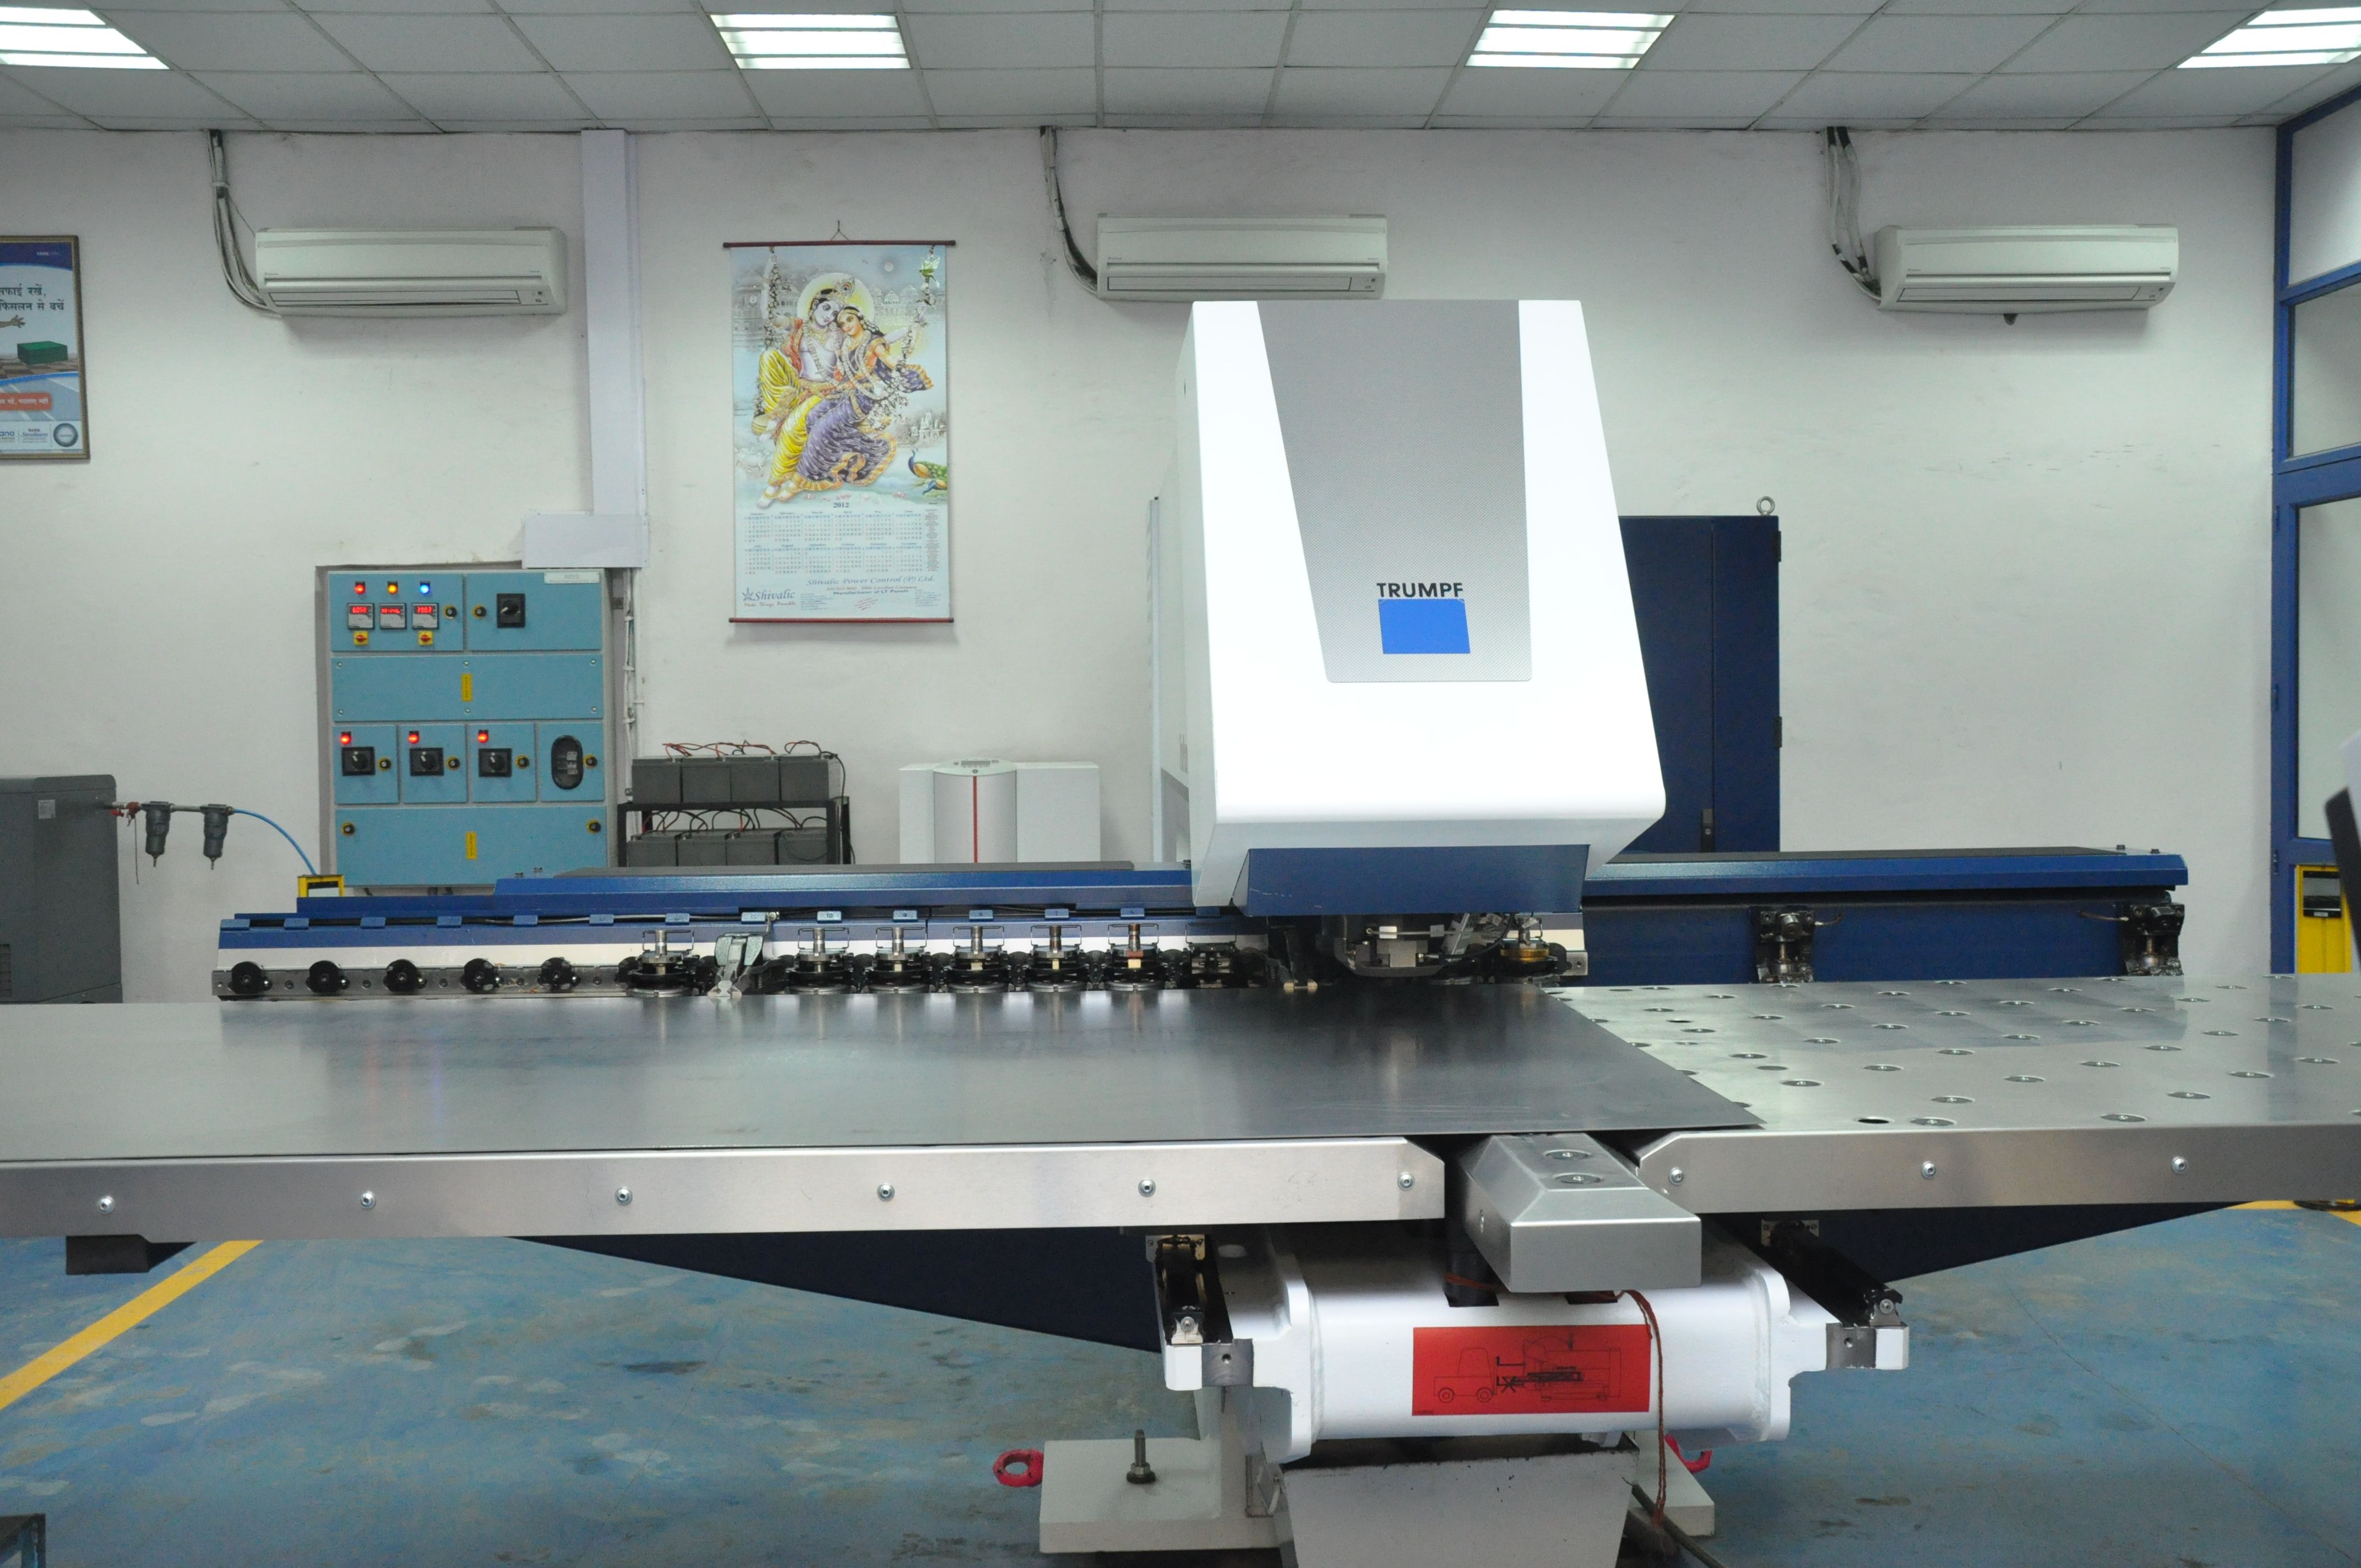 Trumpf Punching German We Have Cnc Turret Punch Press Of German Make M S Trumpf Which Is World Leader In Punching Technology Bed Sizes Trumpf Basic Shapes